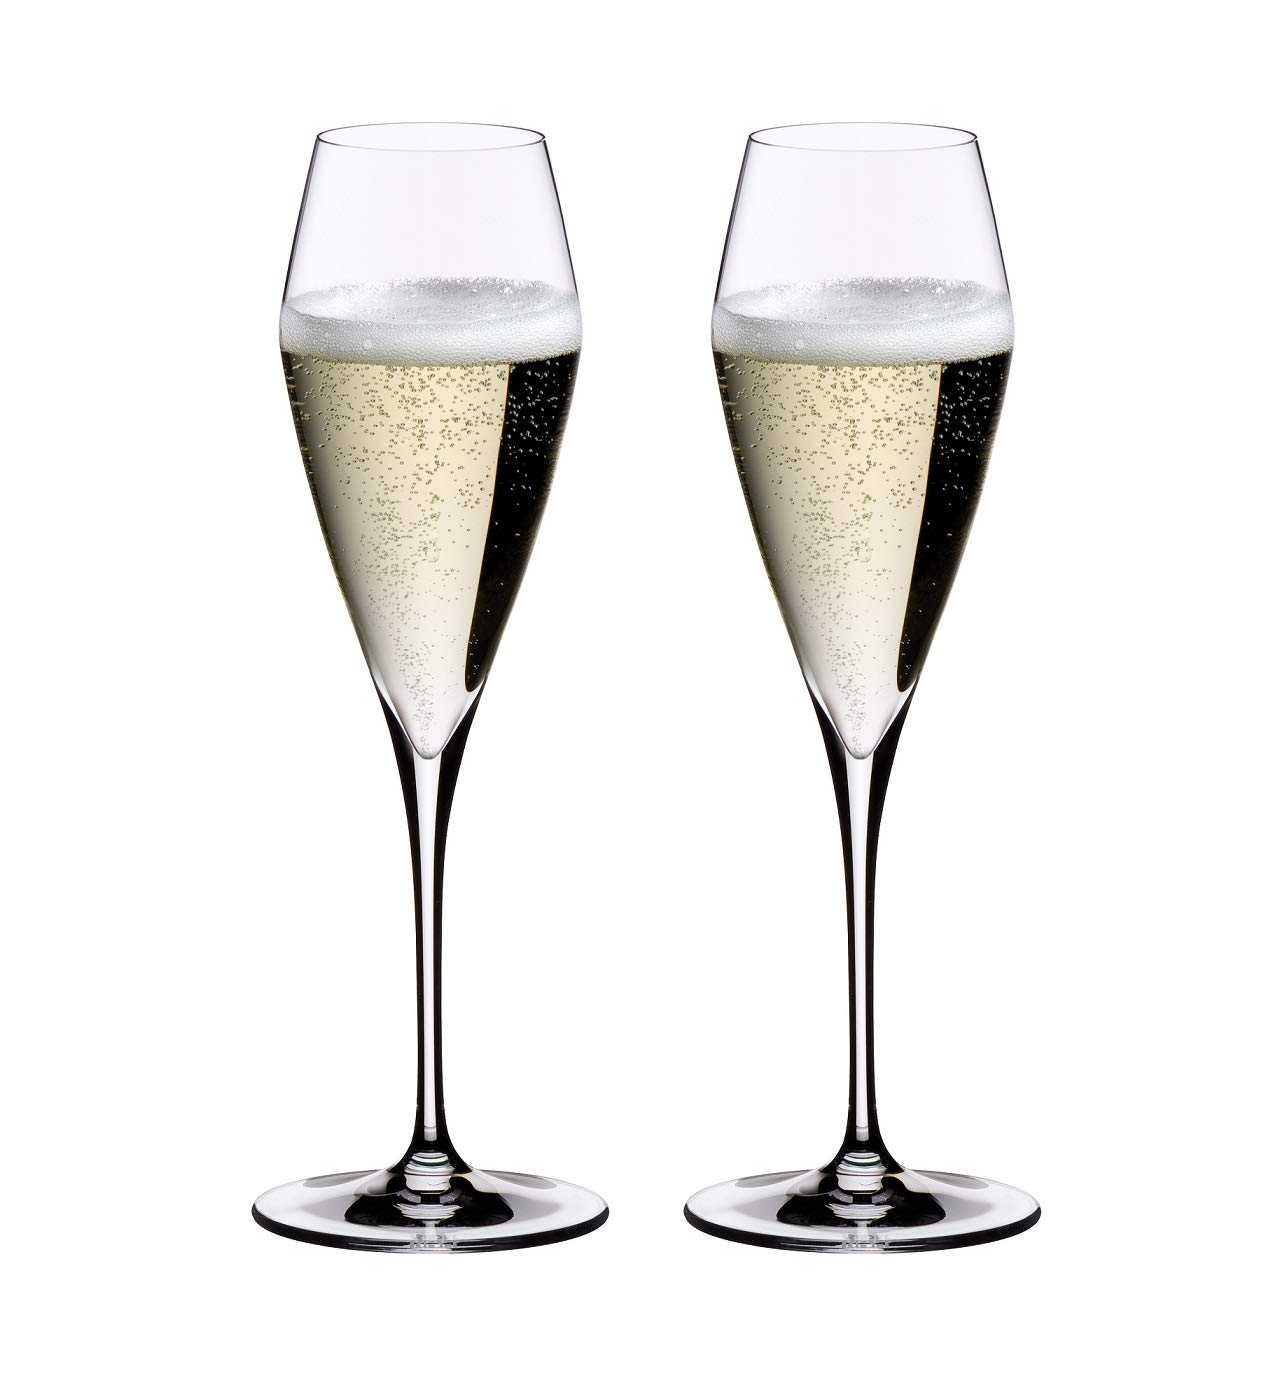 Riedel Vitis Champagne Glass, Set of 2 by Riedel